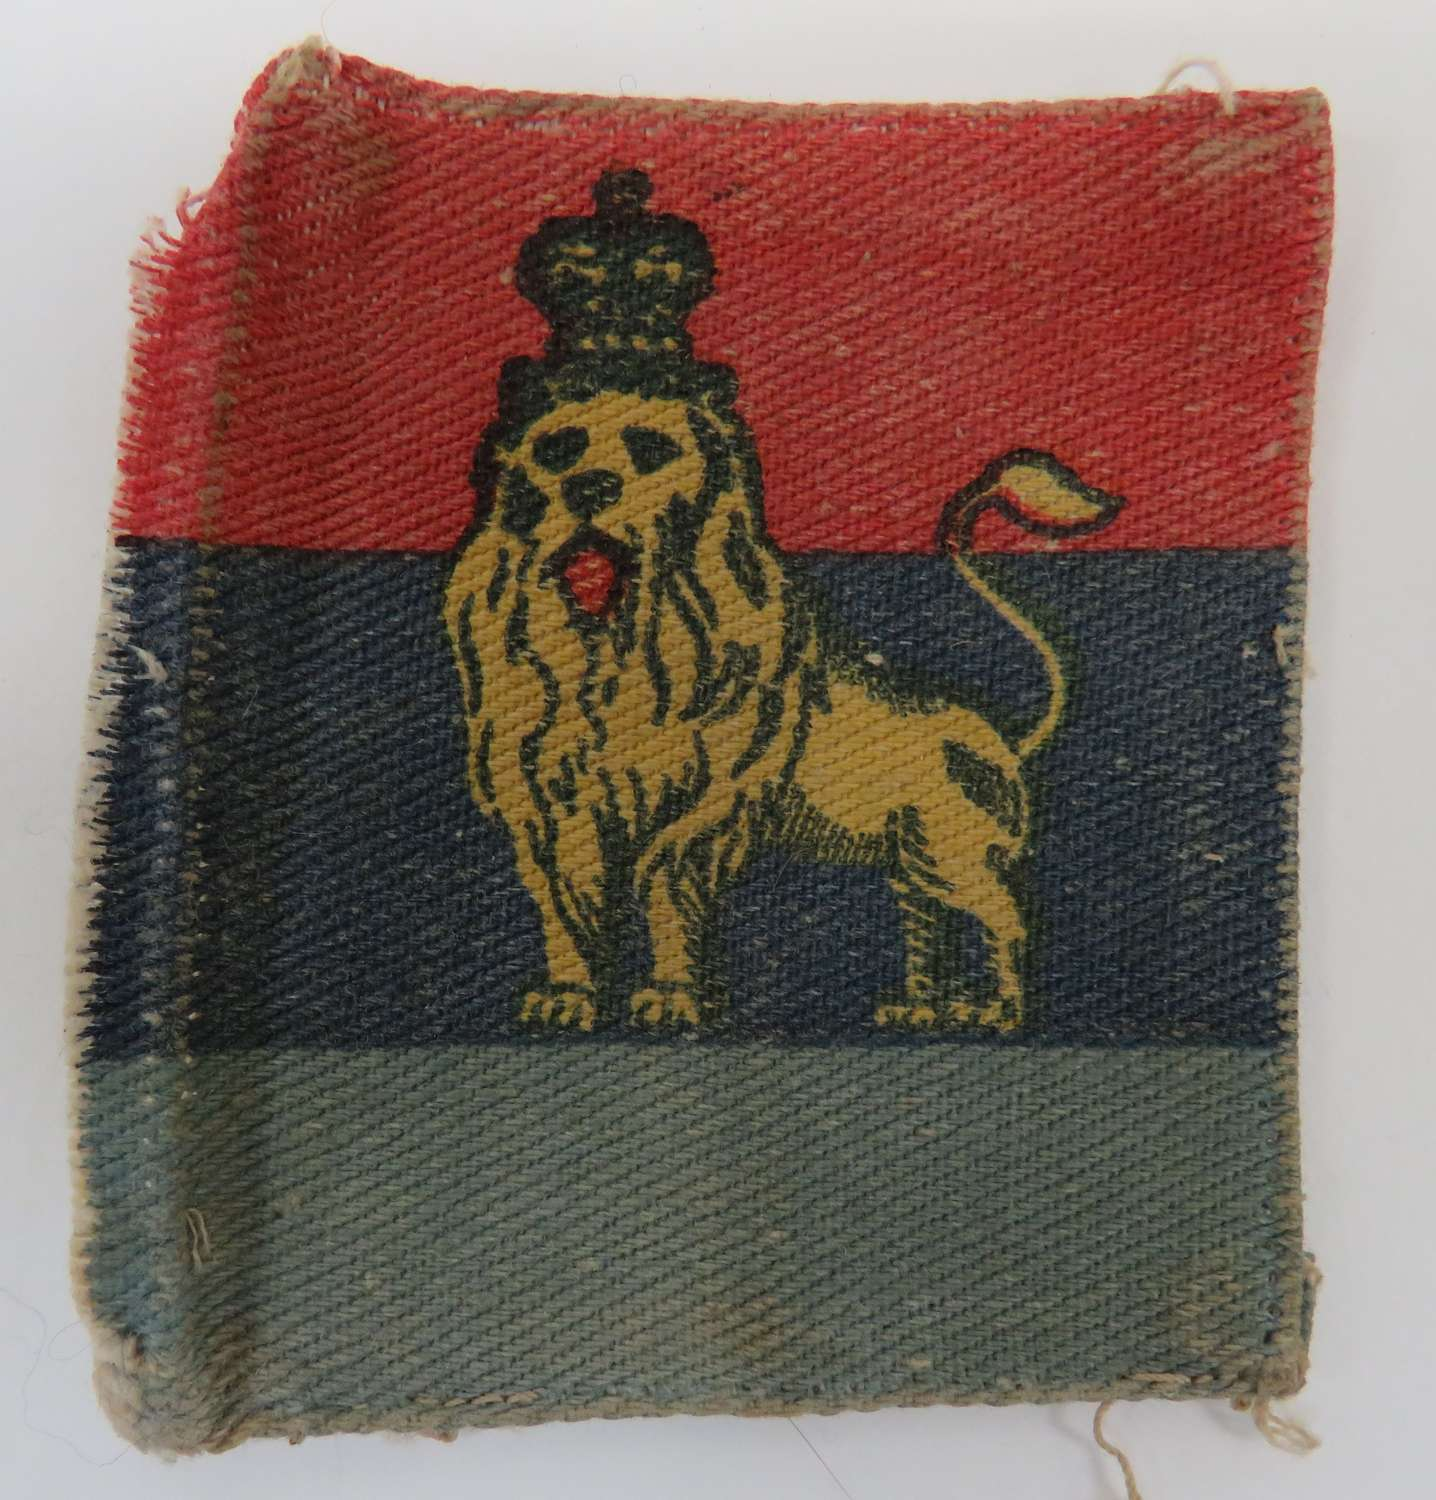 British Troops Egypt Formation Badge